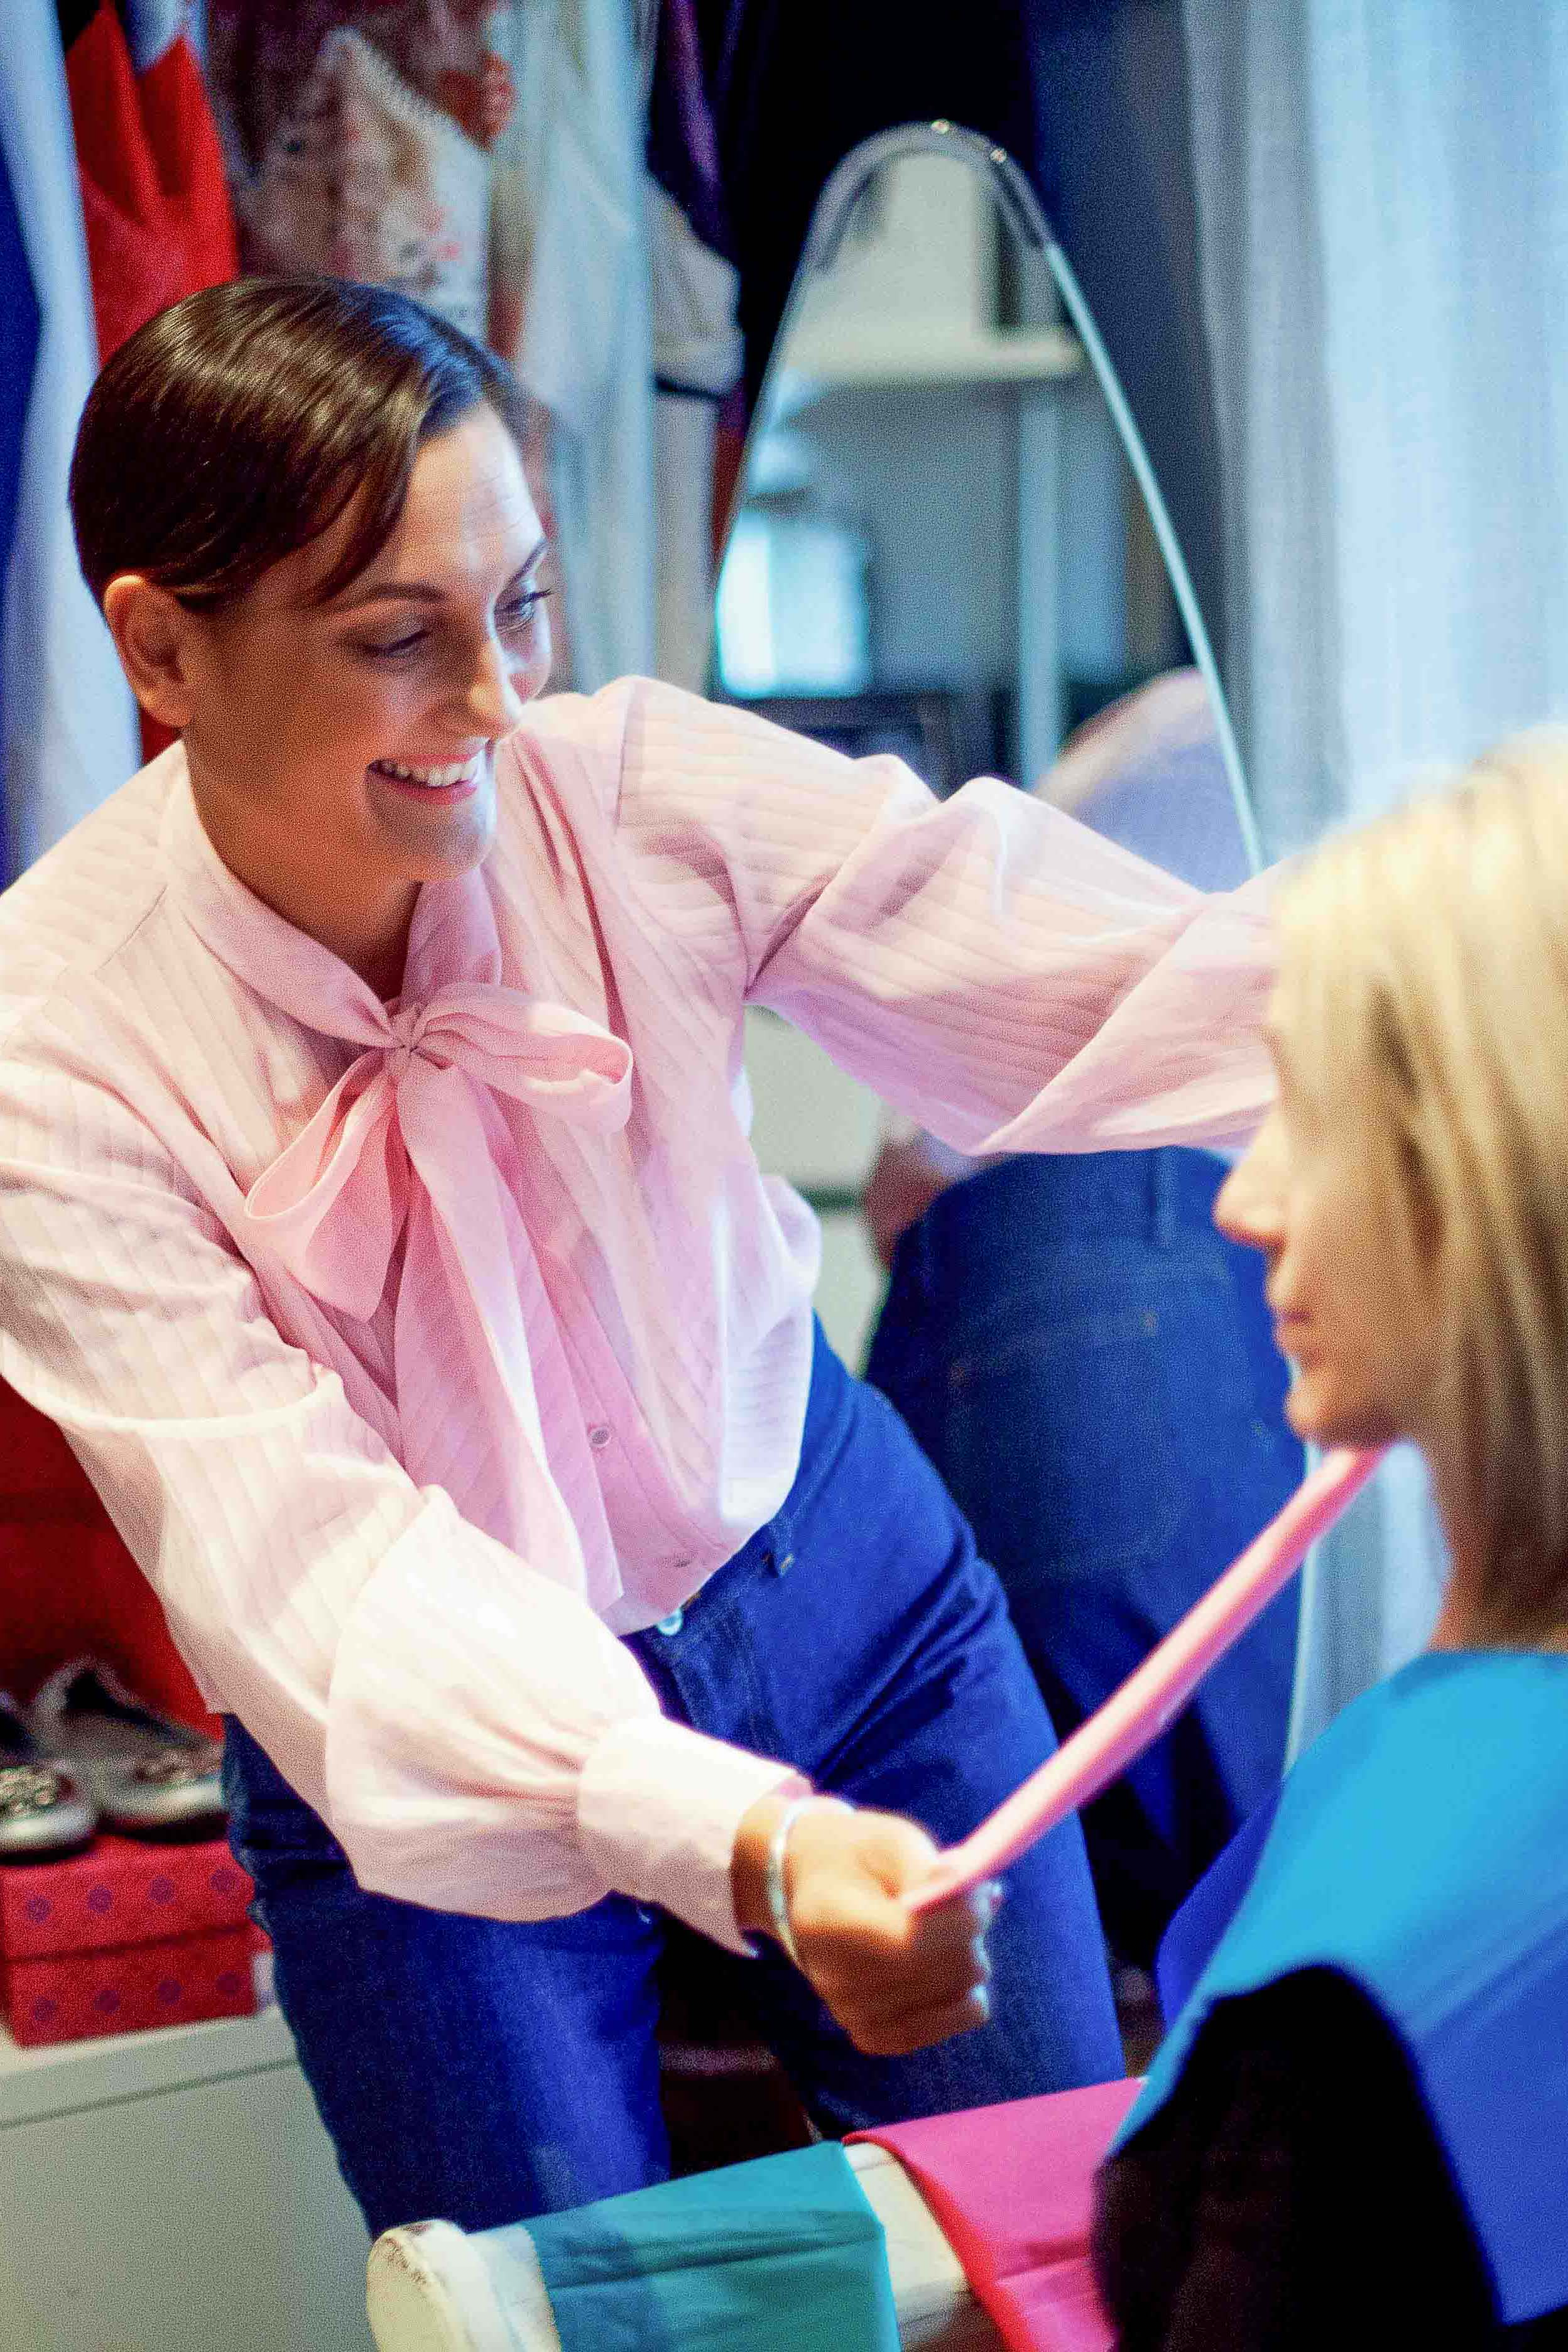 - Choosing the right colours to wear can be really tricky especially if you don't know your colours.Are you wearing colours to suit your hair and eye colour? Do you know what colours best suit your skin tone?Wearing the wrong colours can have a negative effect on your appearance. It can age you, make you look more tired, knowing the right colours for you can instantly make you look younger, more radiant and confident.Spend 90 minutes with me and my colour swatches and I will show you how to wear the best colours for you, and also the colours to avoid.Having a colour analysis has so many benefits for you, not only with clothes but your make up too. Let me teach you about colours to enhance your features, brighten up your wardrobe and make your shopping trips easier.Colour Analysis £50 per hour